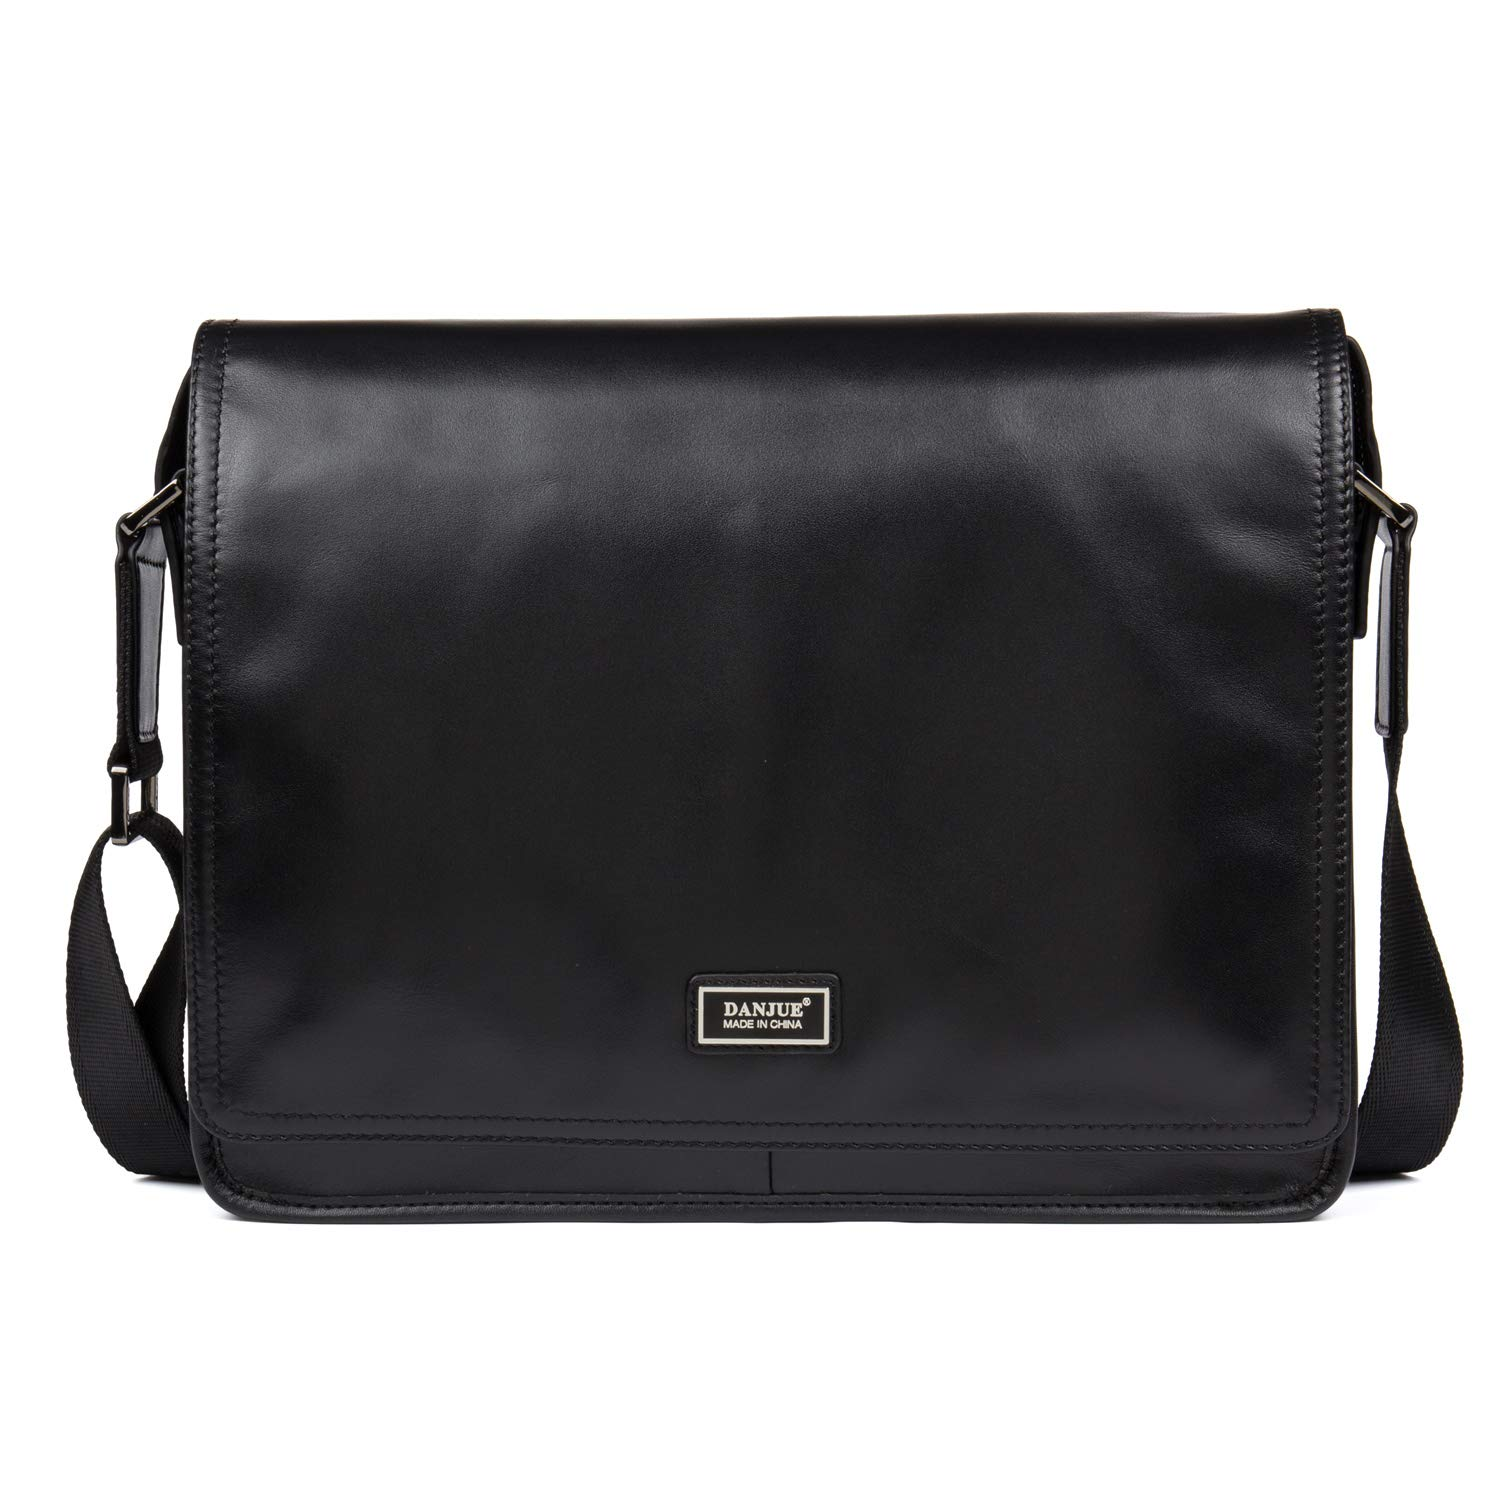 DANJUE Full Grain Leather Messenger Bag for Men with Card Slots Flap-over Casual//Business Crossbody Bag for 9.7 inch Ipad D8287 Black